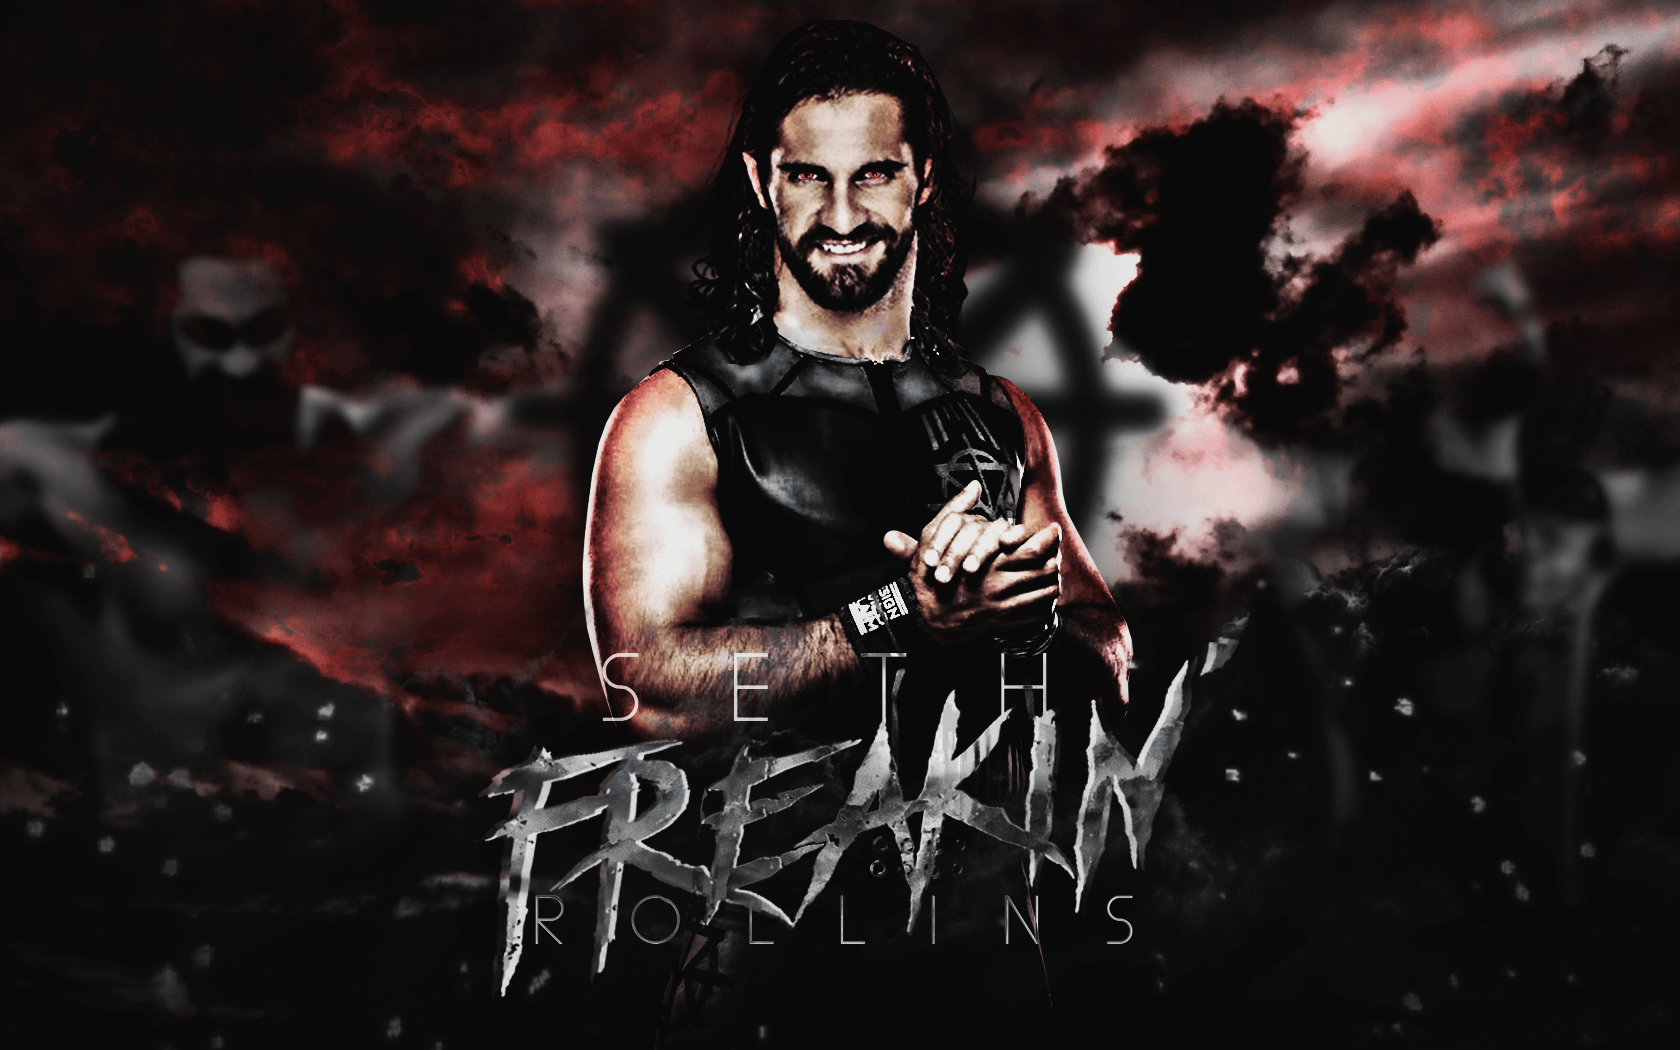 Seth rollins hd wallpaper